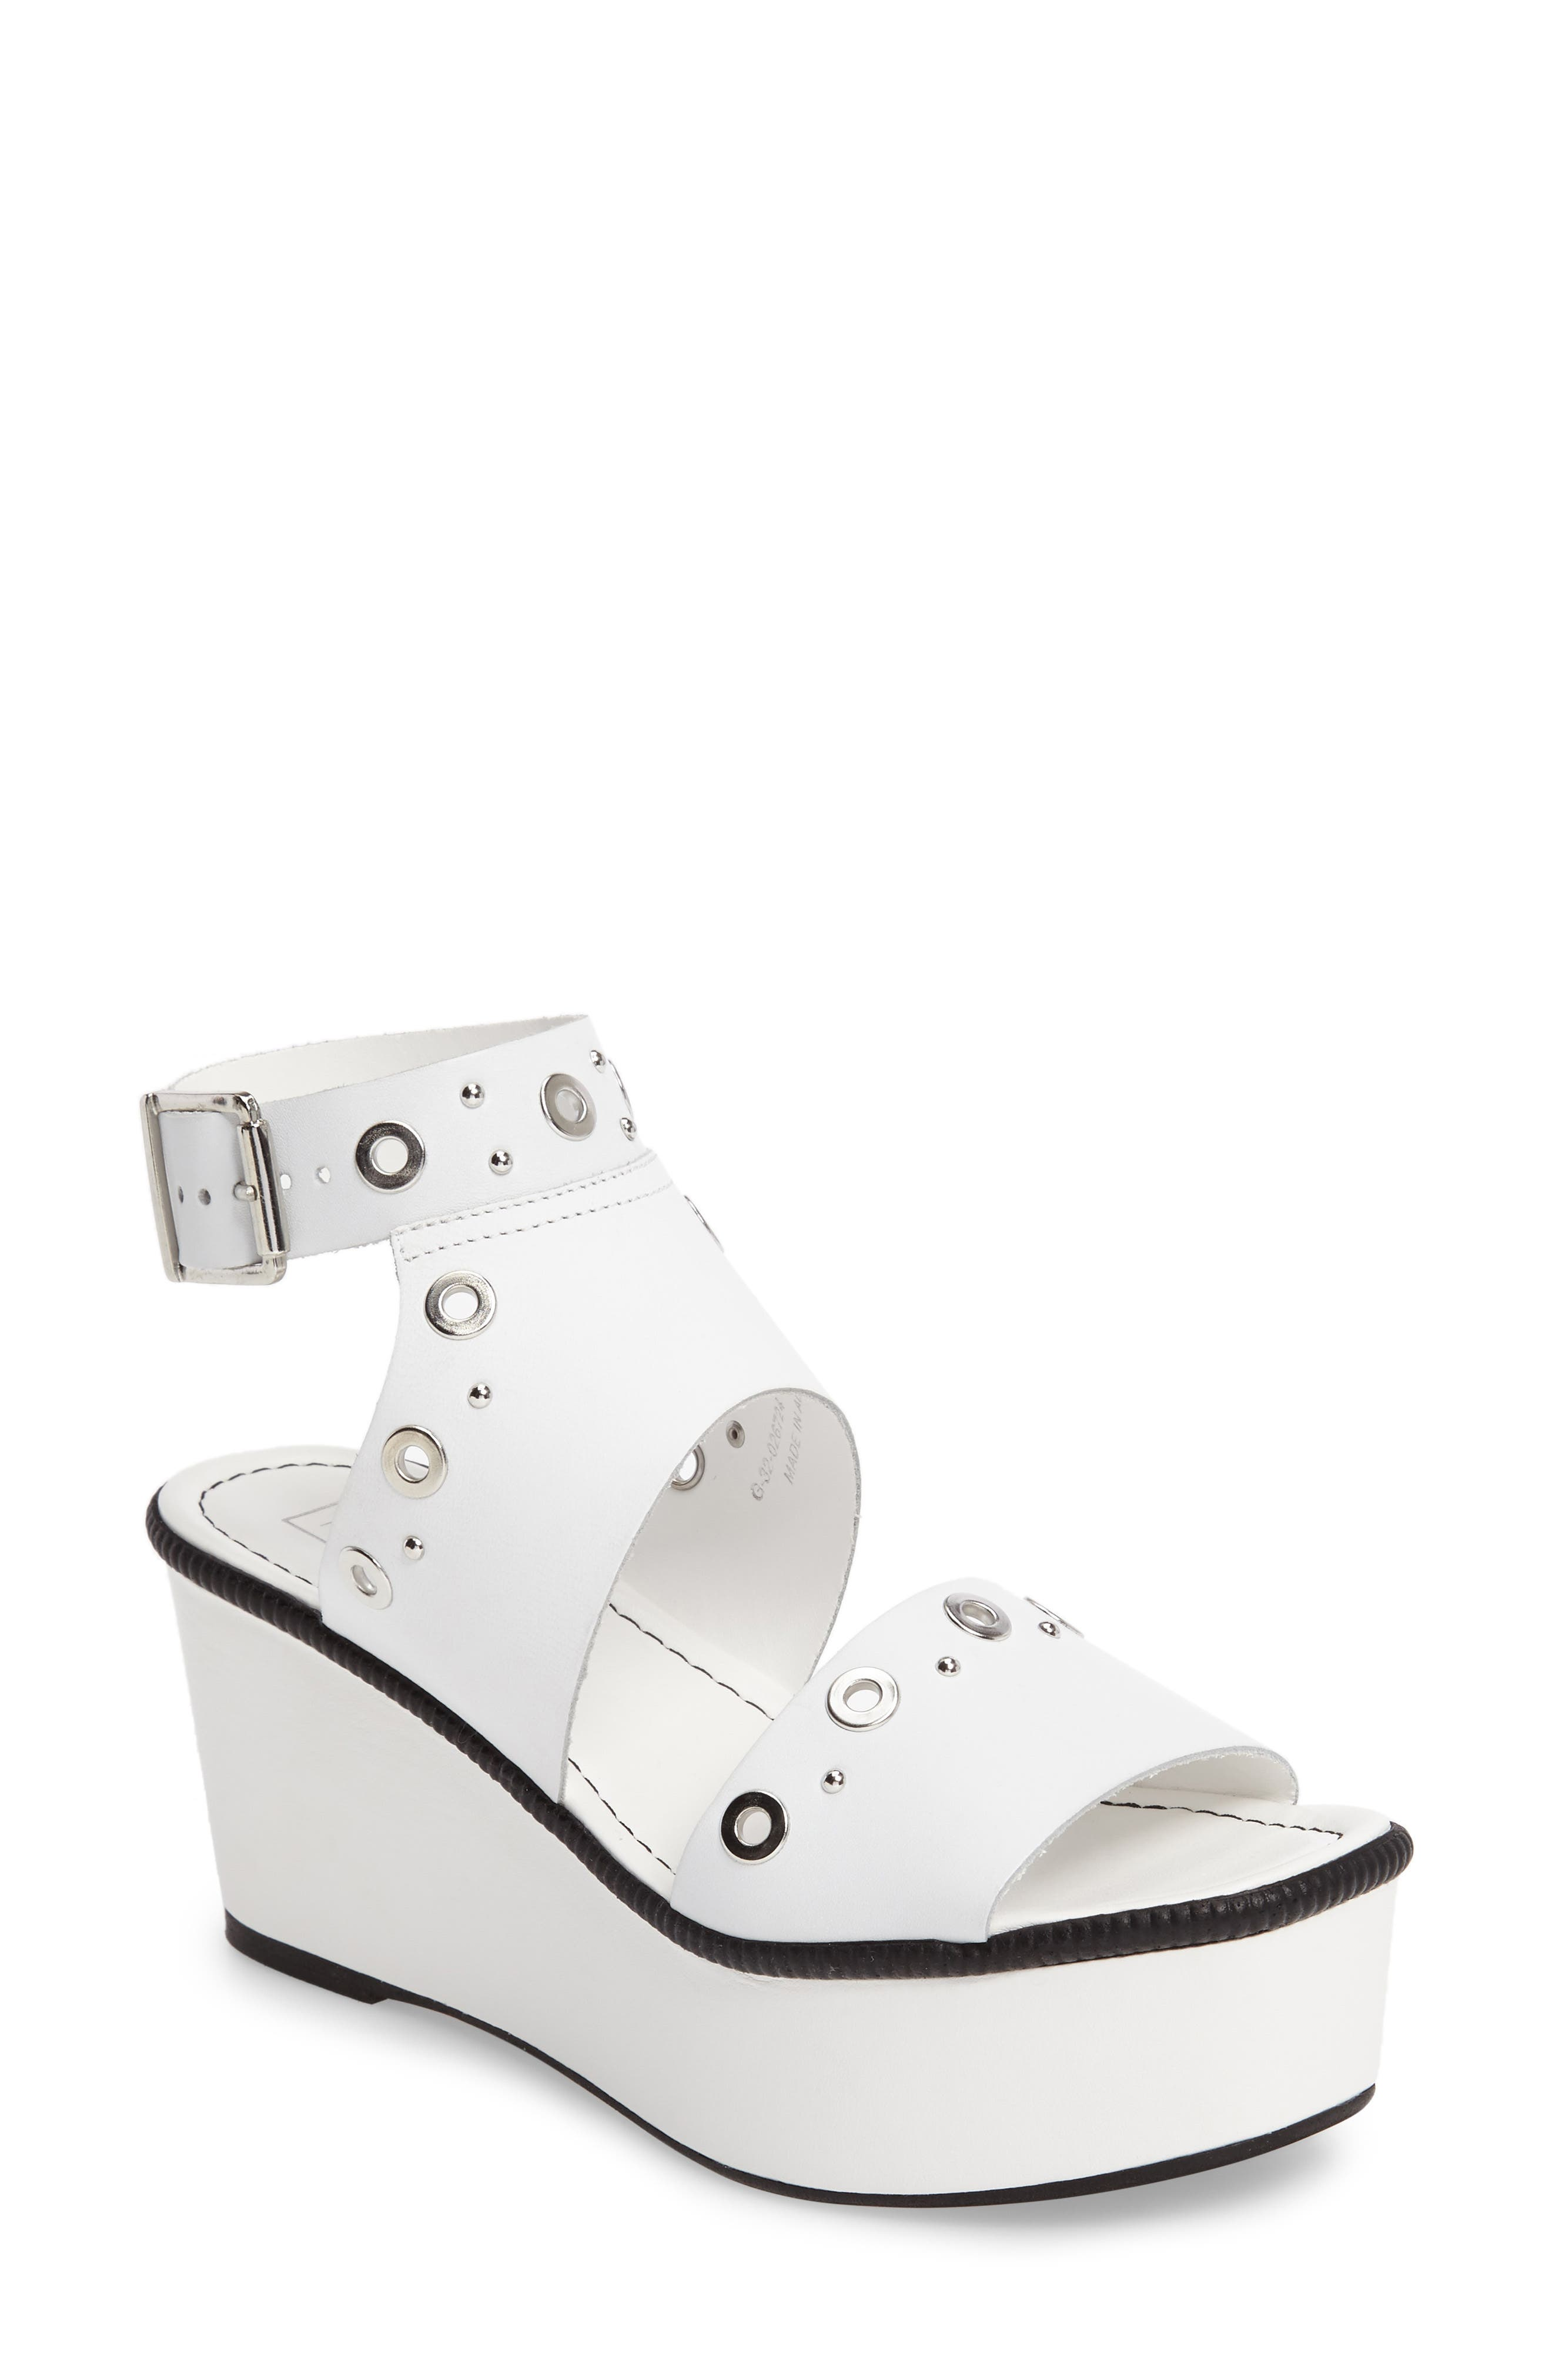 Topshop Wizz Grommeted Platform Wedge Sandal (Women)